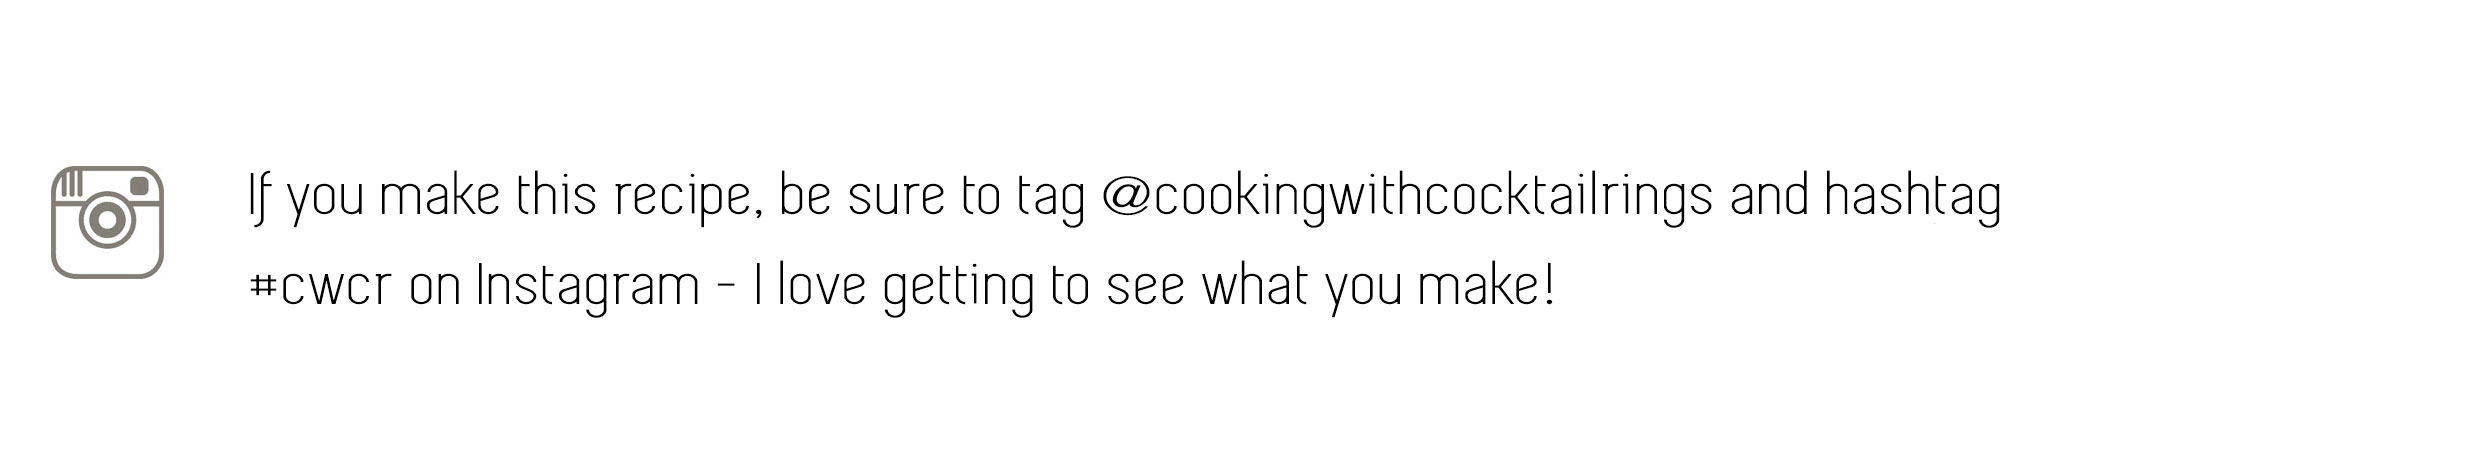 instagram @cookingwithcocktailrings